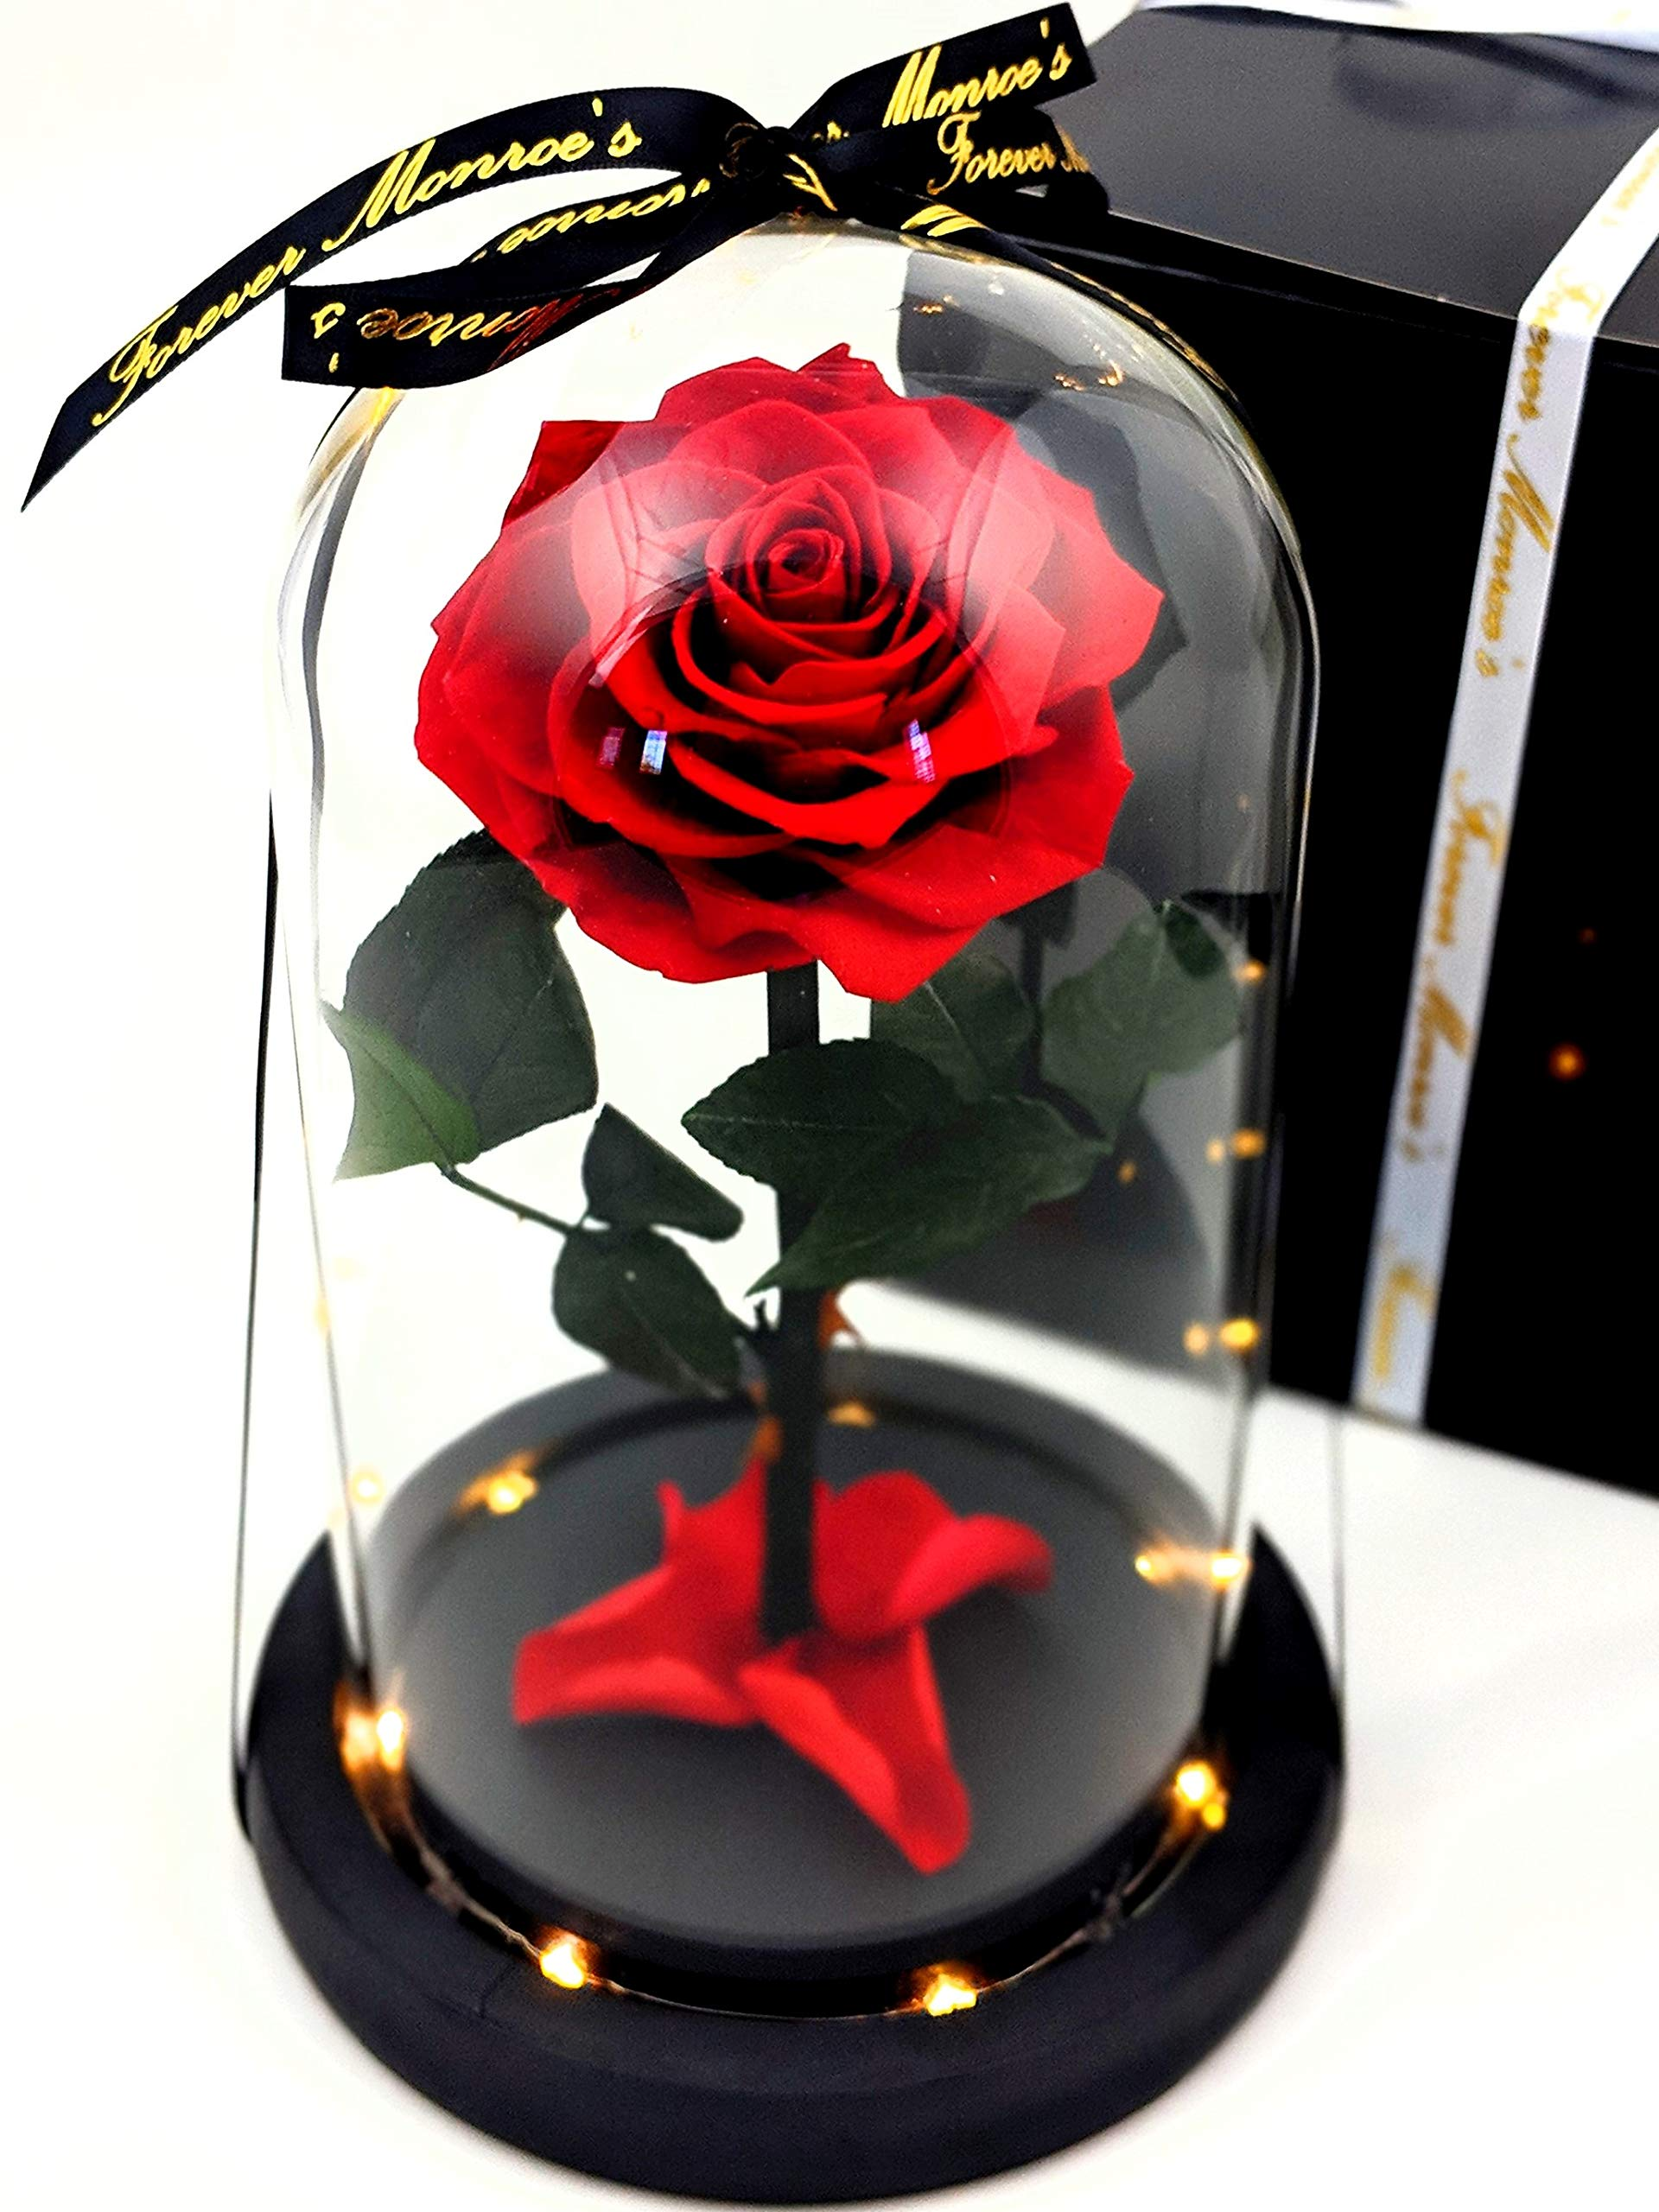 Forever Monroe's Enchanted Real Preserved Long Stem Red Rose in Large Glass Dome with LED twinkle lights inspired by Beauty and the Beast Movie